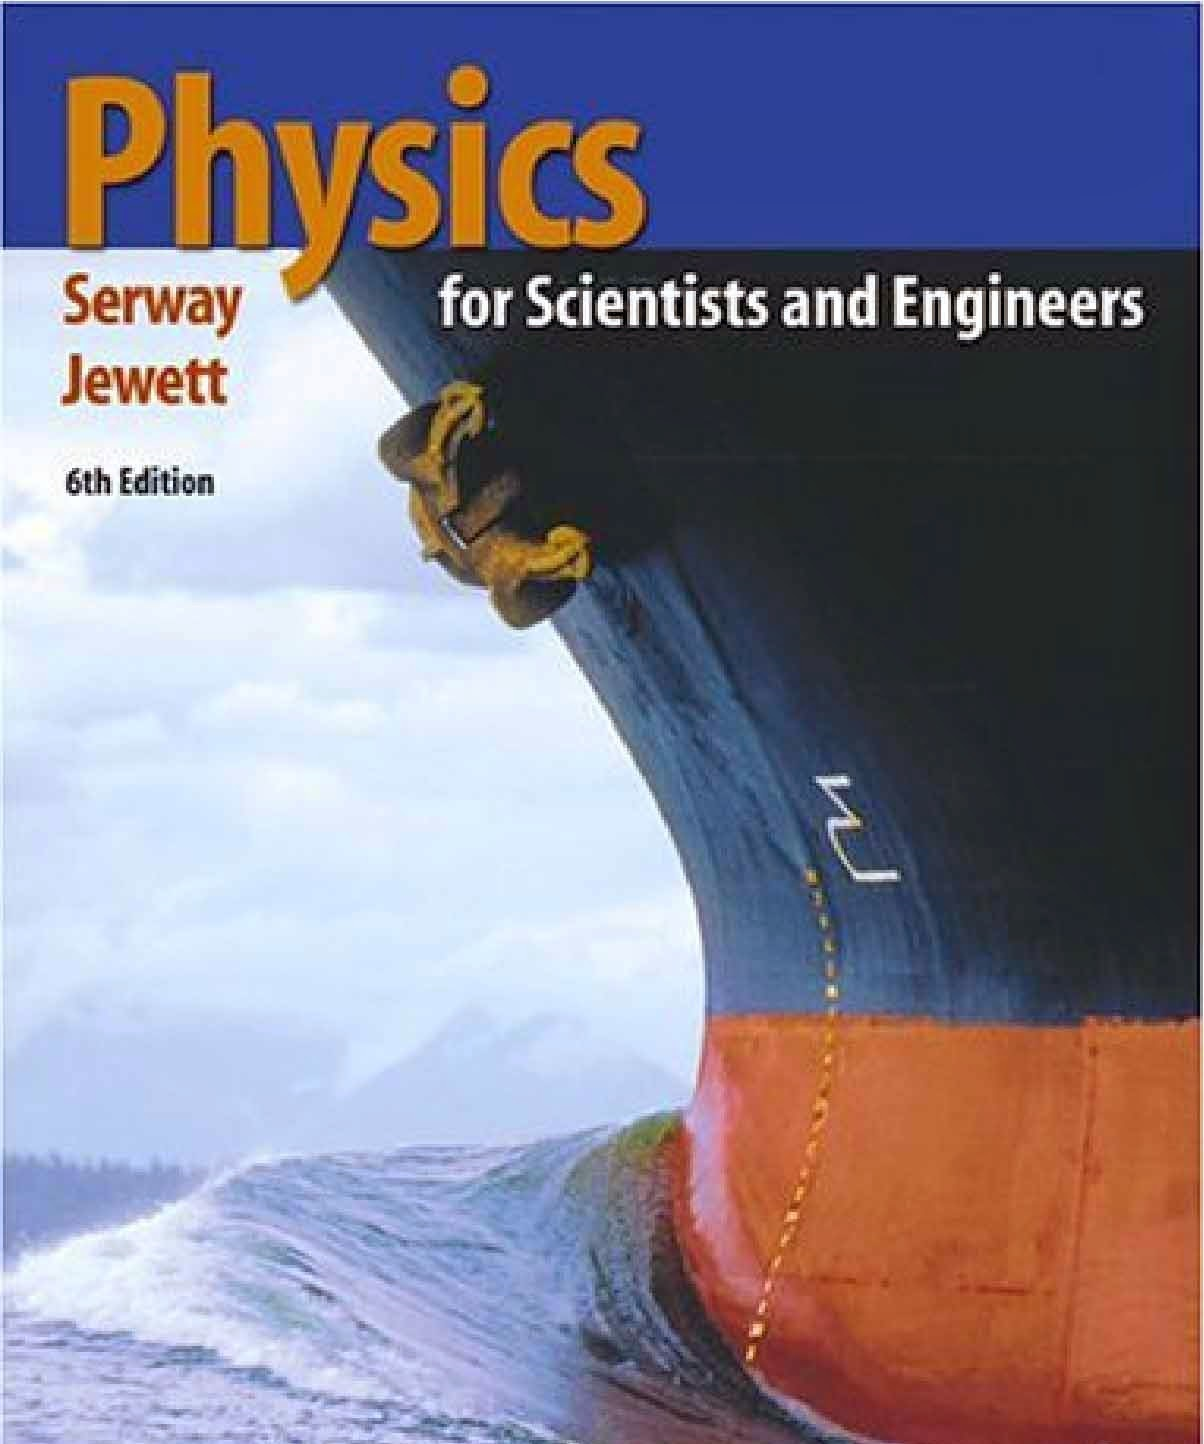 Pdf Books Physics For Scientists And Engineers By Serway And Jewett